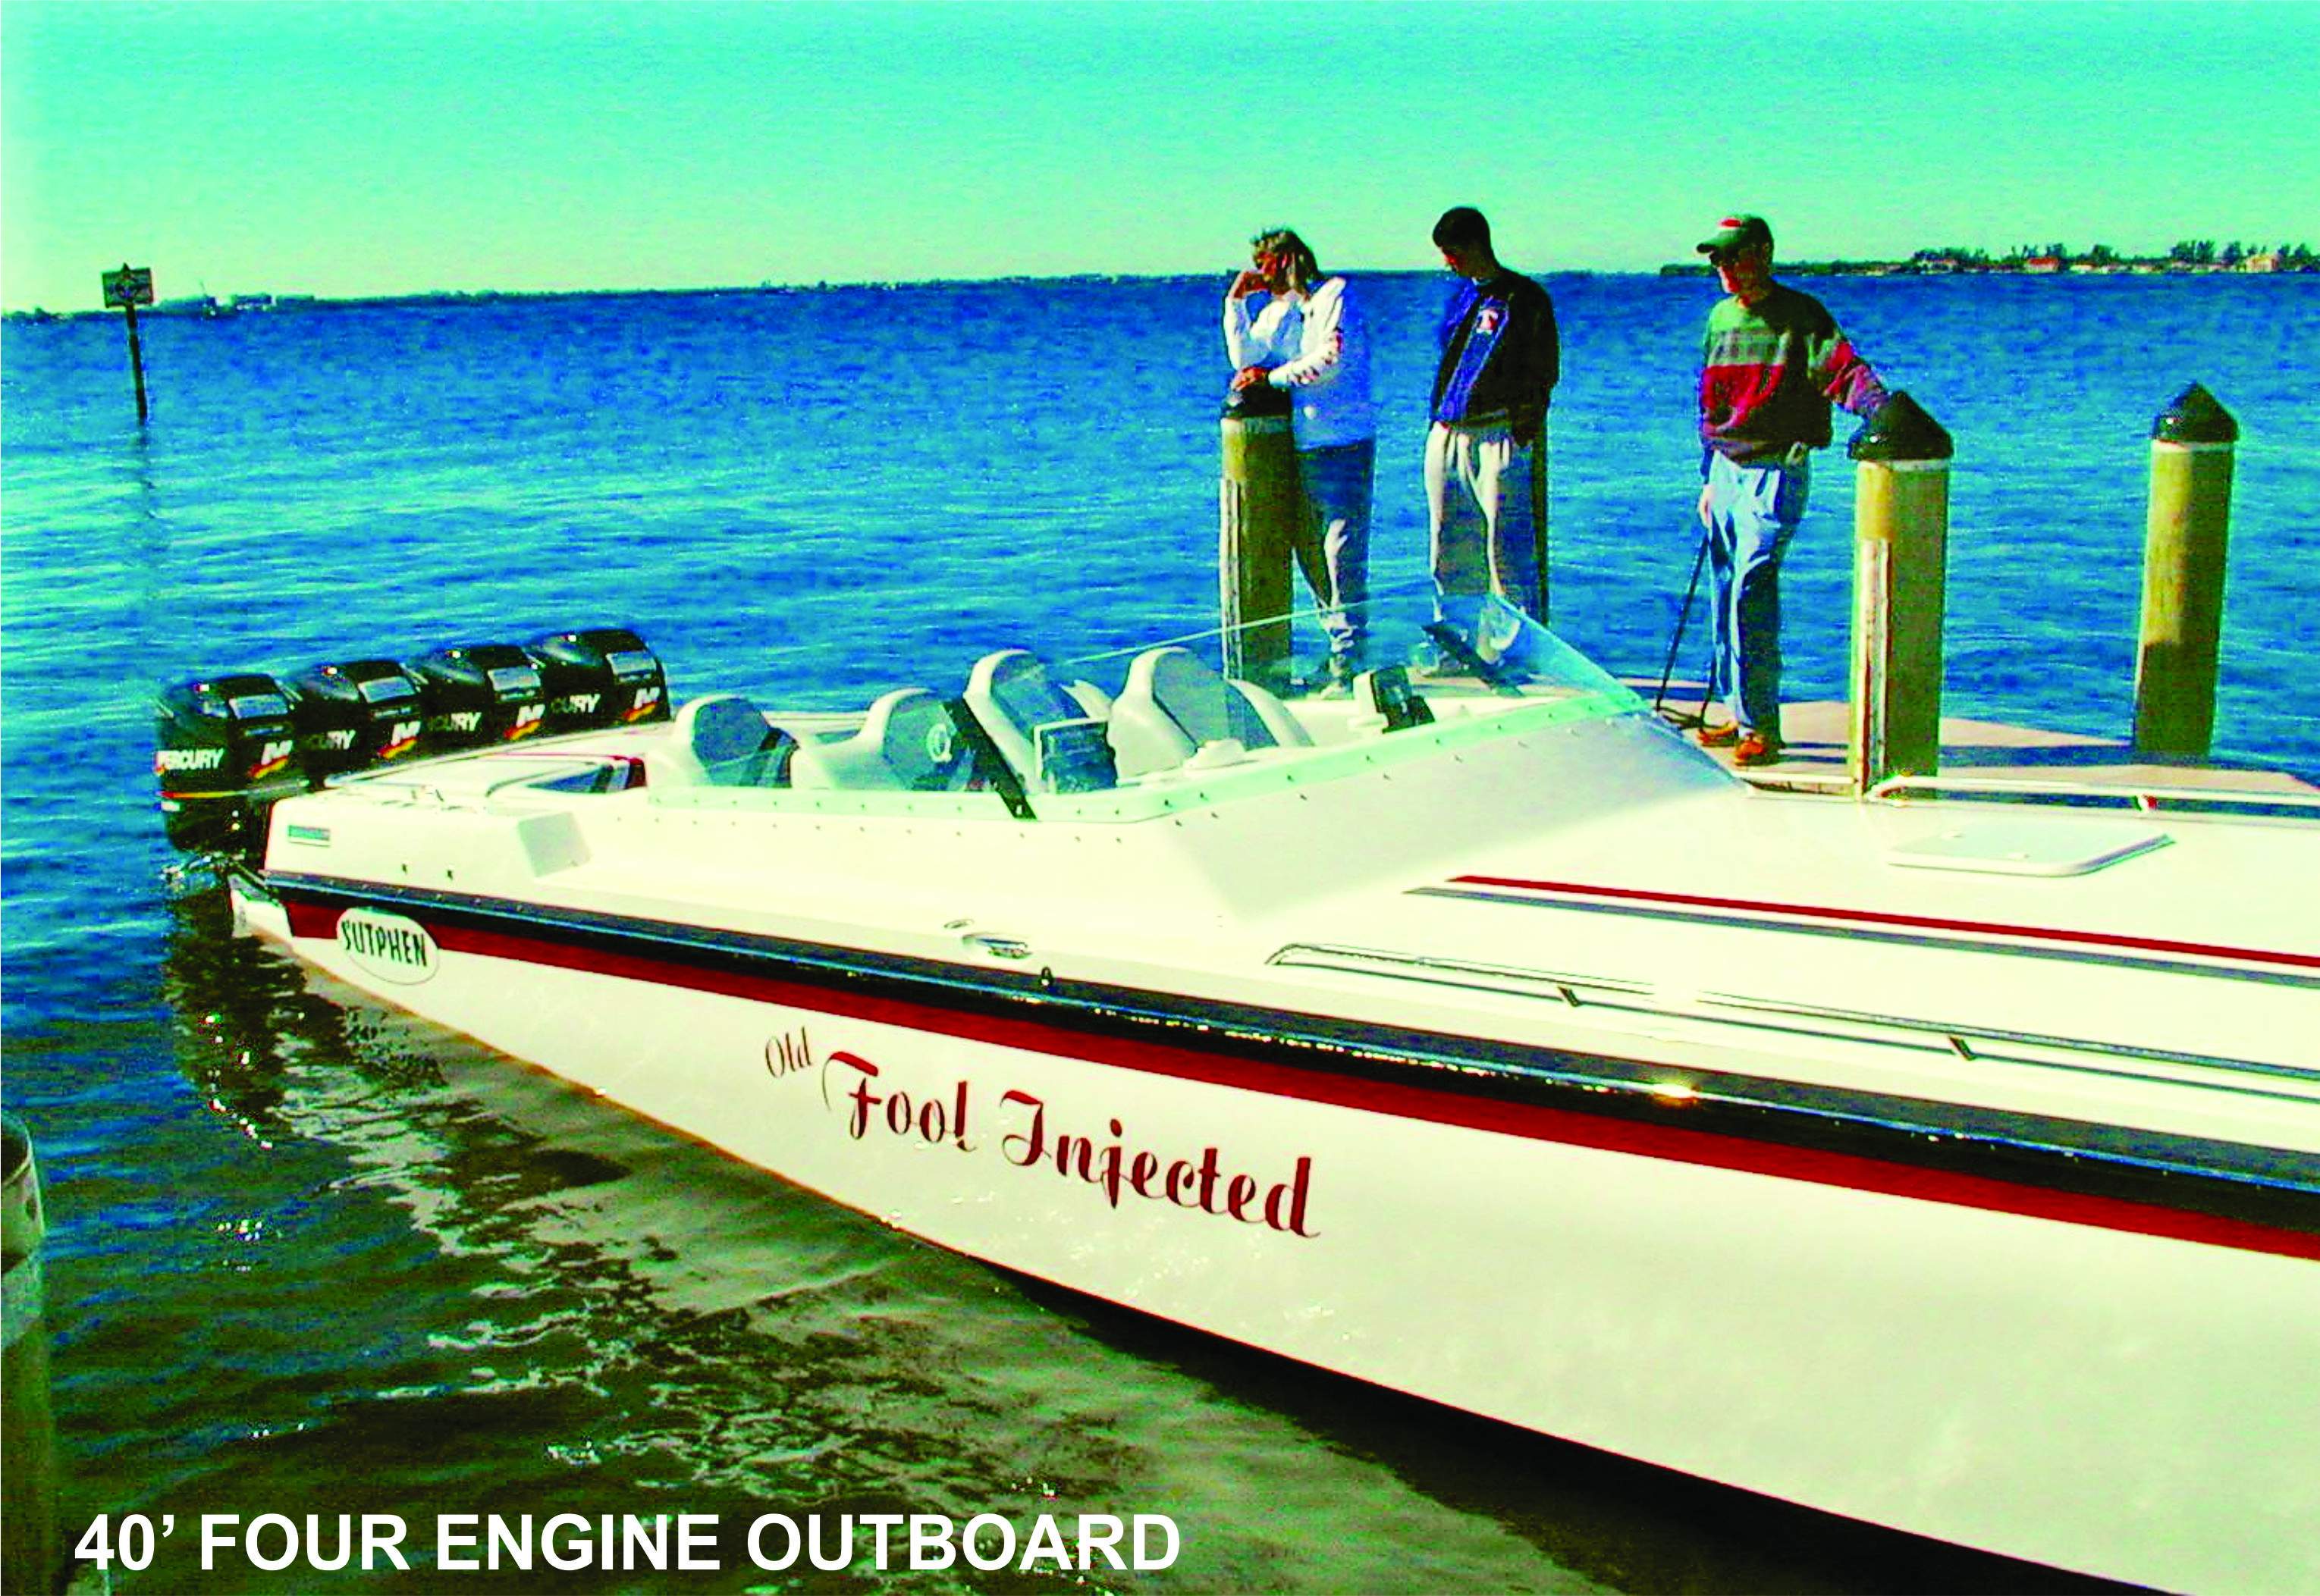 An outboard-powered 40-foot Sutphen.